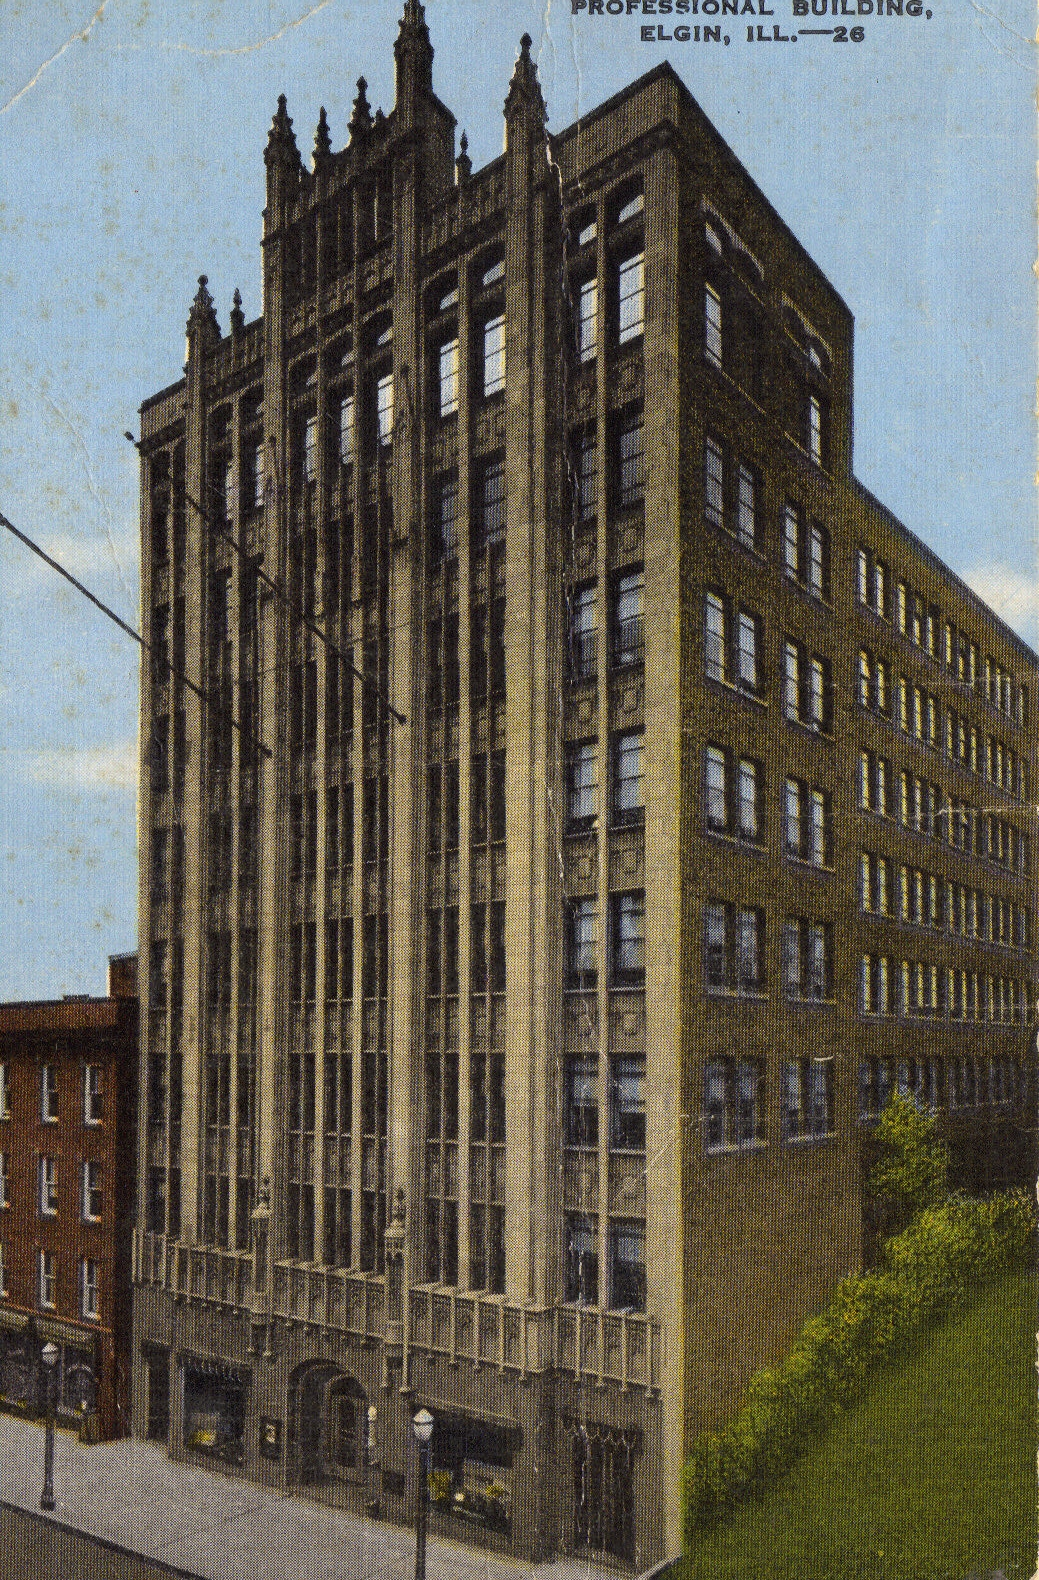 Elgin-Professional-Building-1926.jpg